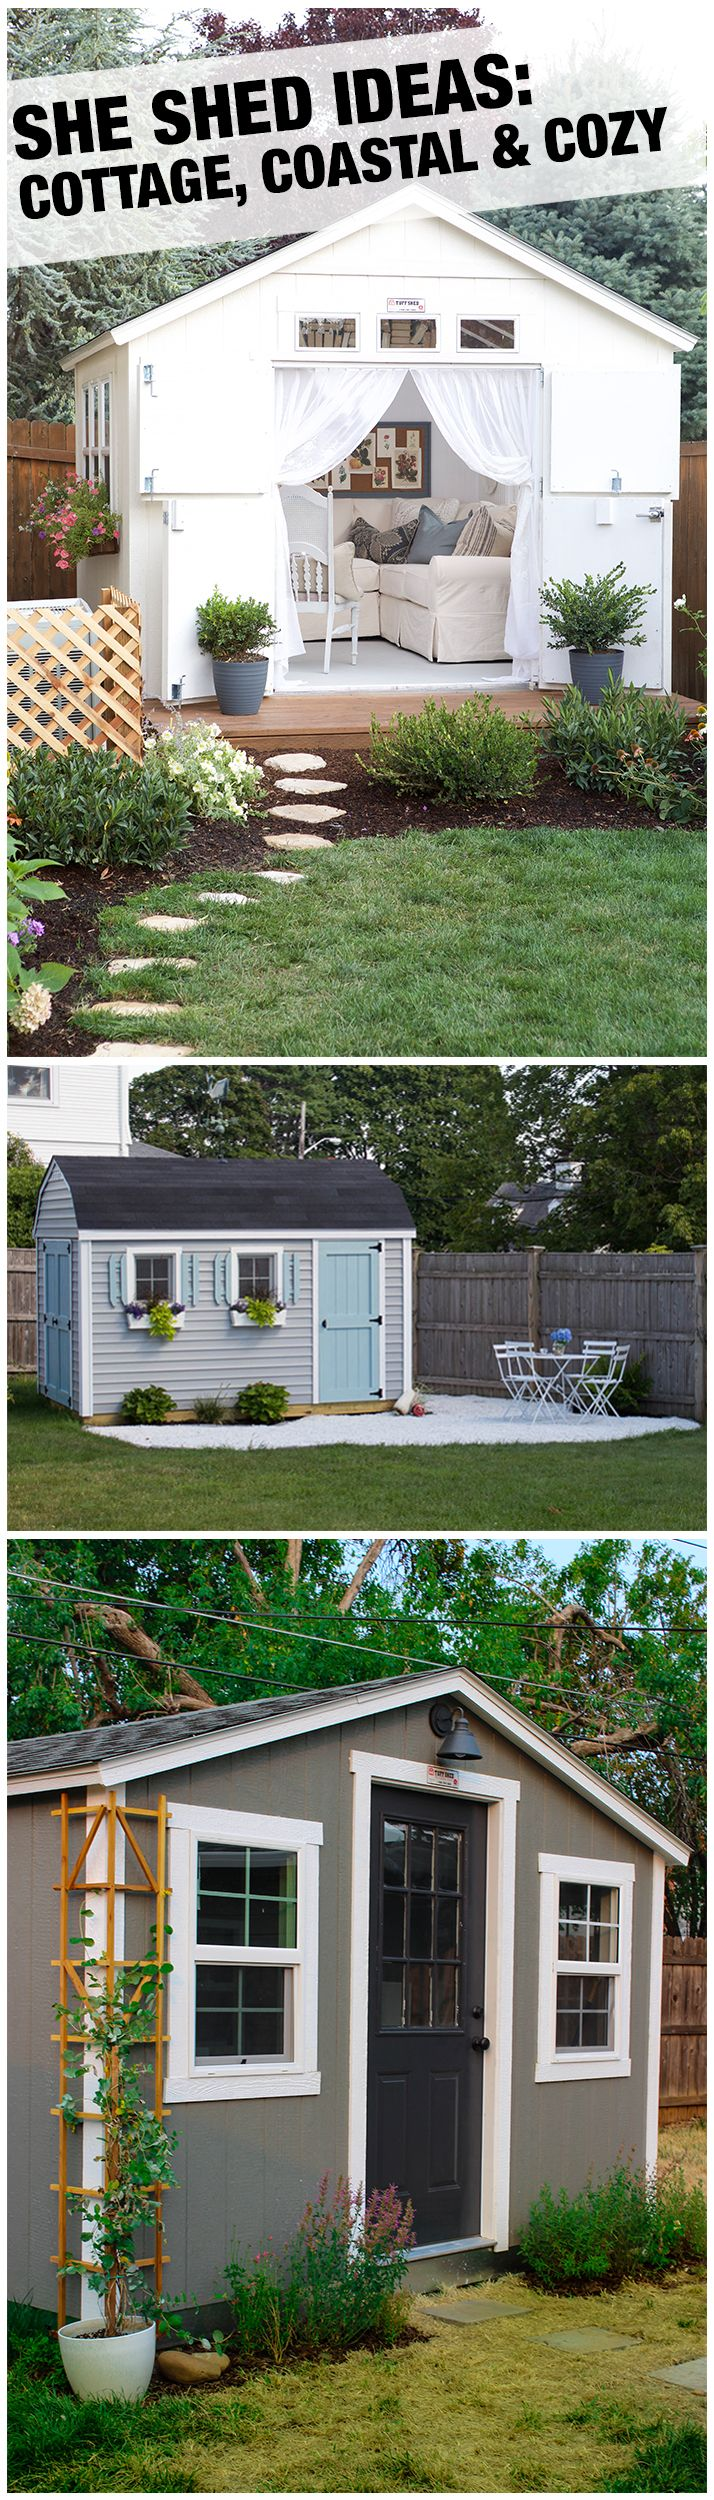 She Sheds Are One Of The Best Backyard Trends Ever! All It Takes Is A  Storage Shed And Some Clever Decorating Ideas To Create Your Own Backyard  Retreat. Let ...